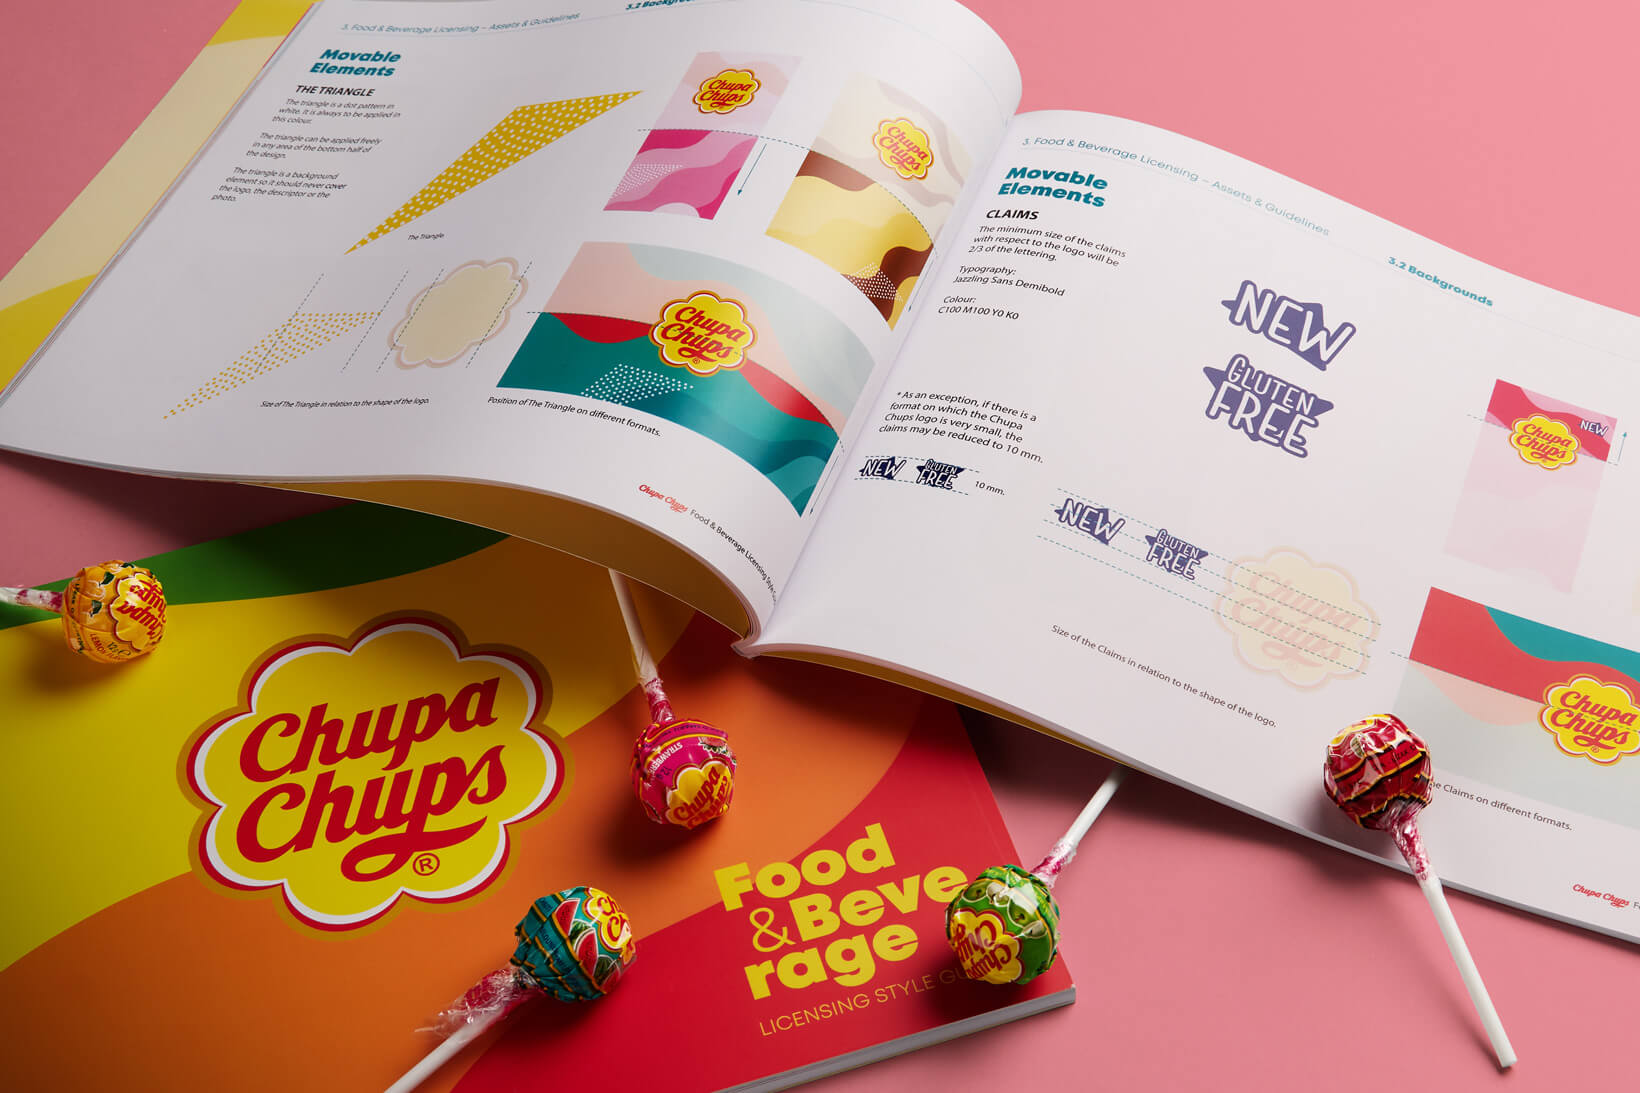 Chupa Chups packaging branding licensing brand architecture graphic design brand book Vibranding